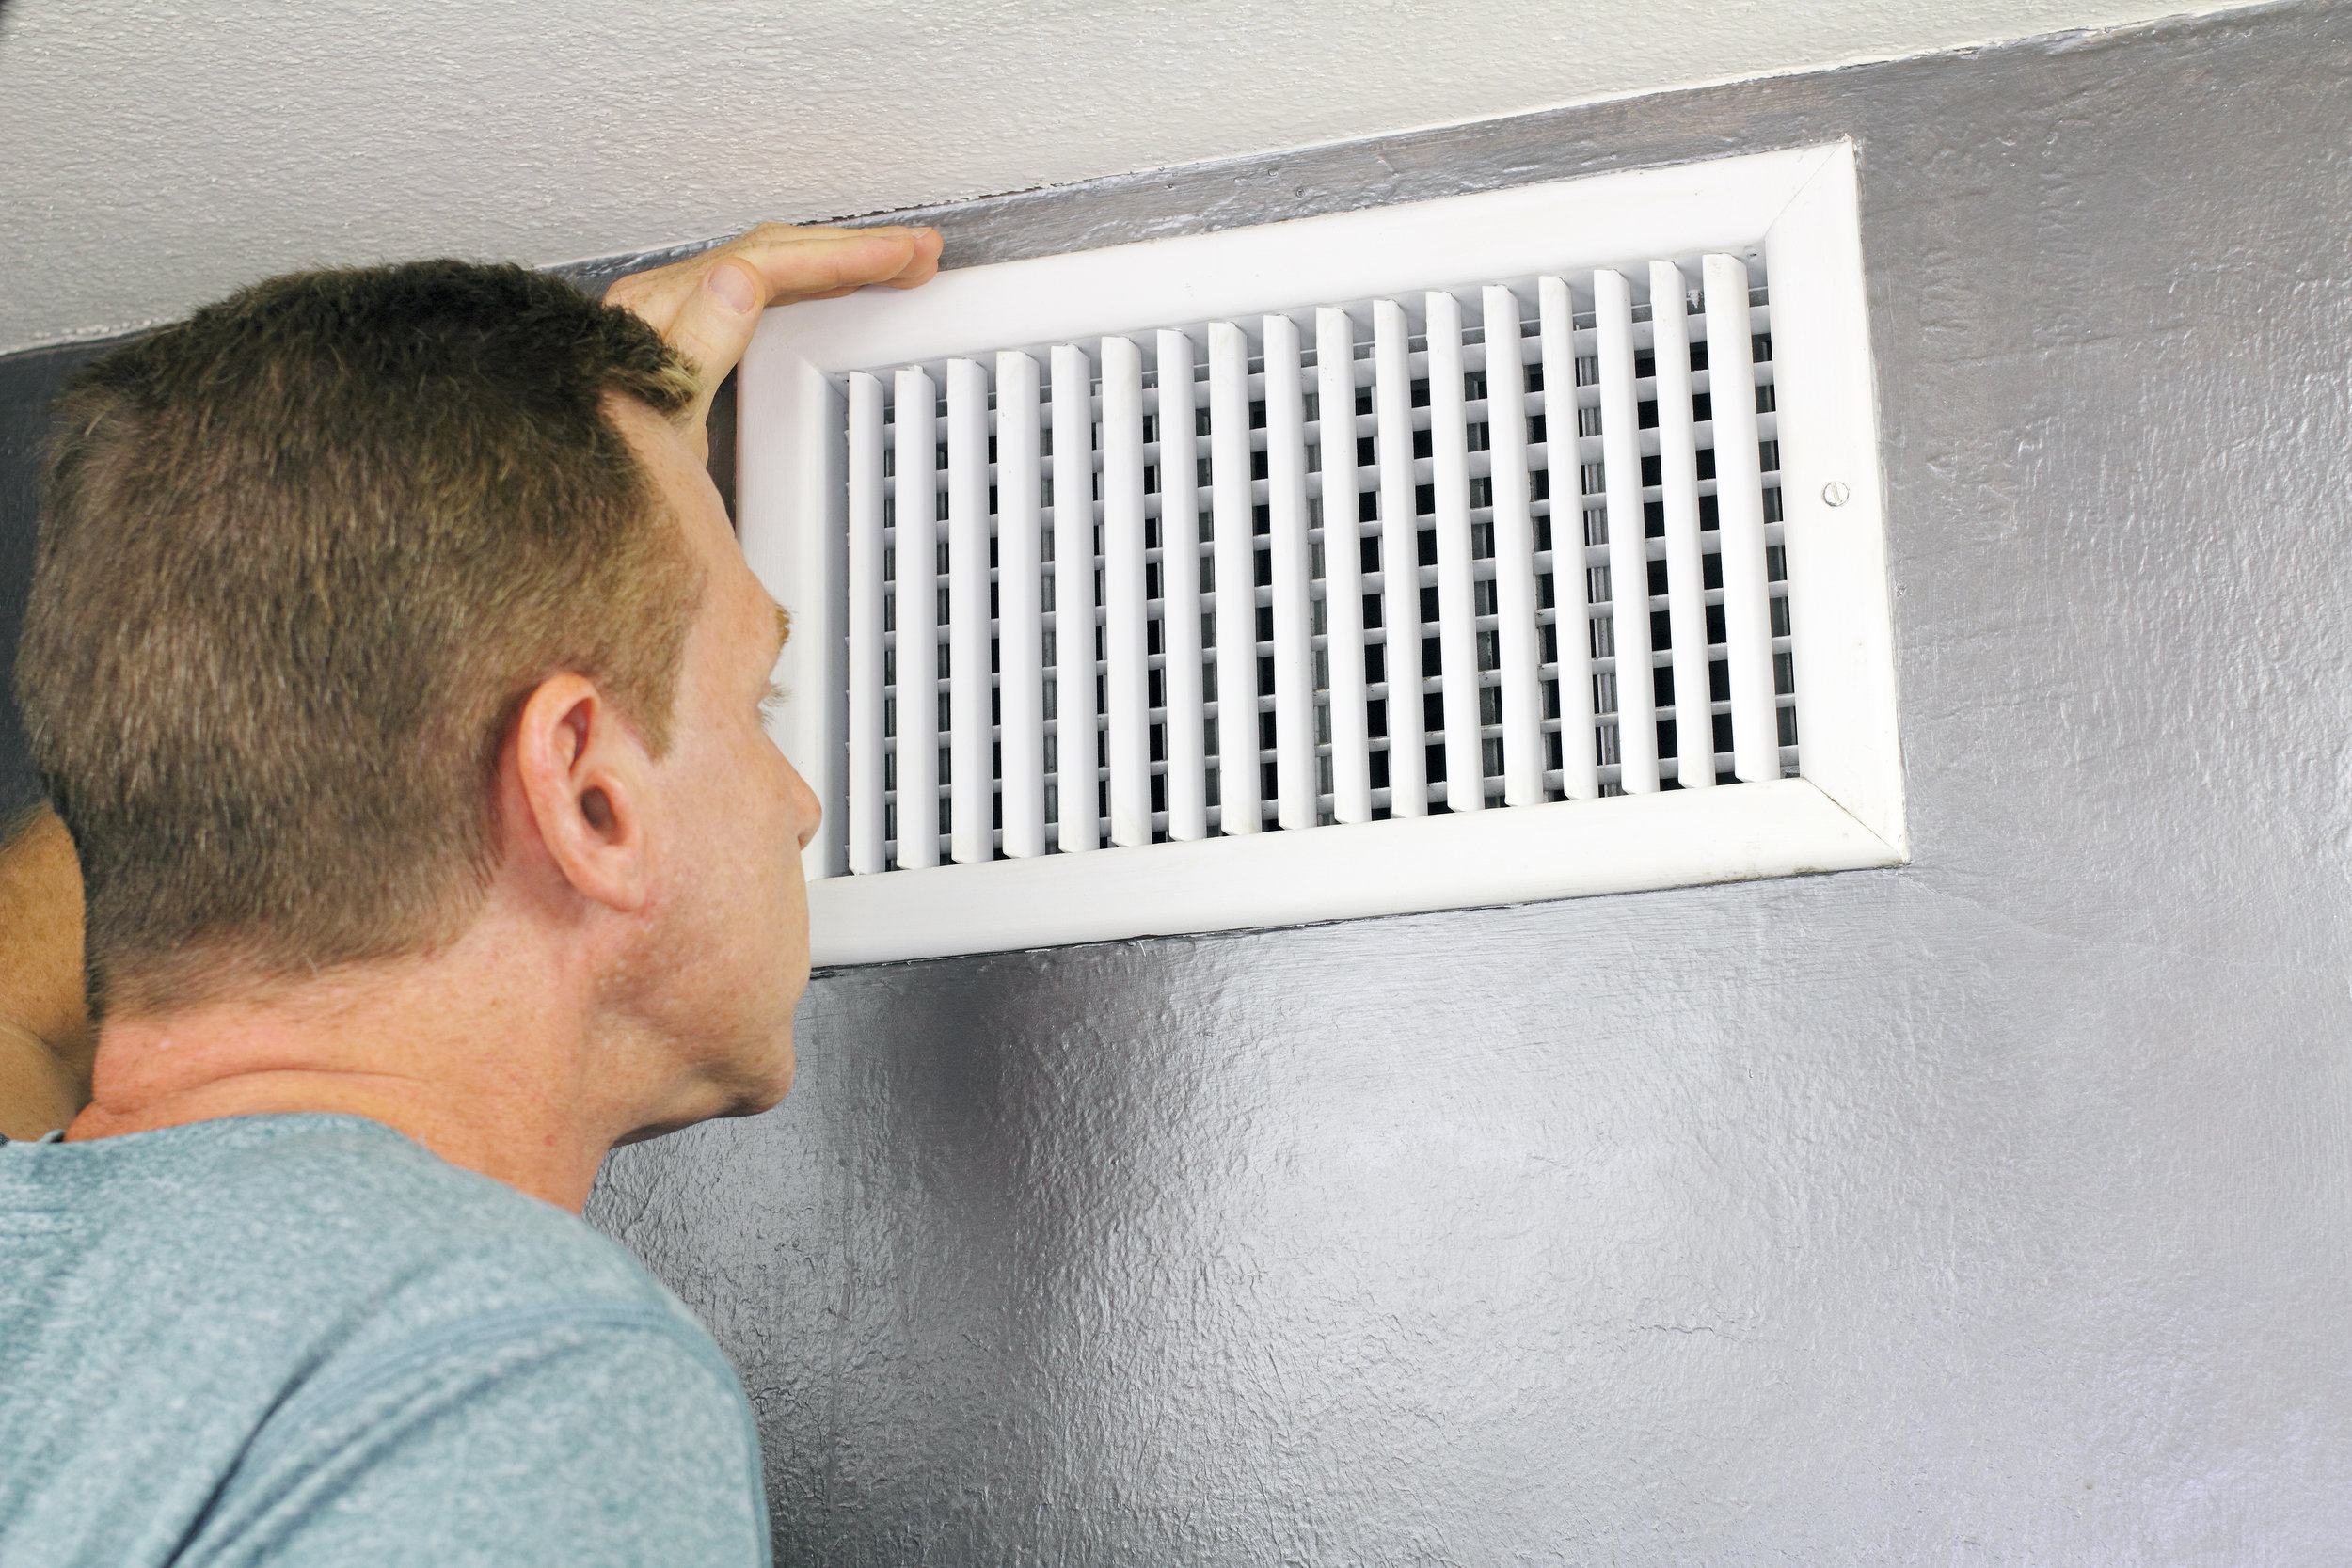 Are you concerned about mold in your air ducts? - Contact Five Star to have one of our certified technicians clean your duct work.